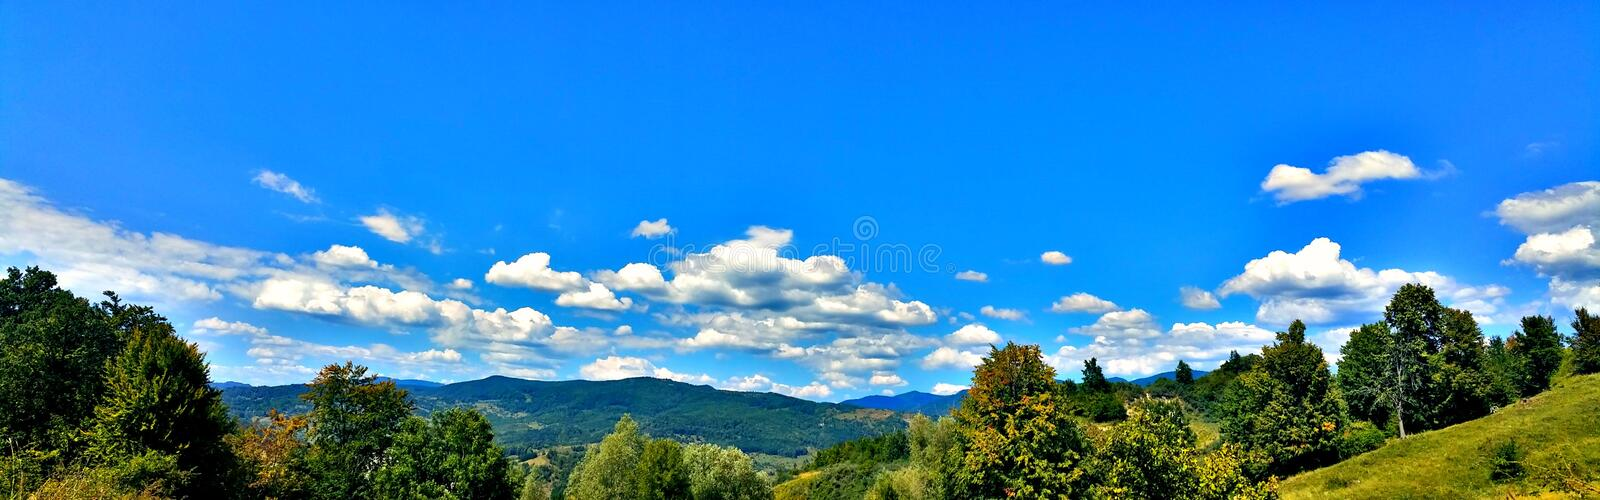 Landscape, mountain, trees, sky and clouds stock image